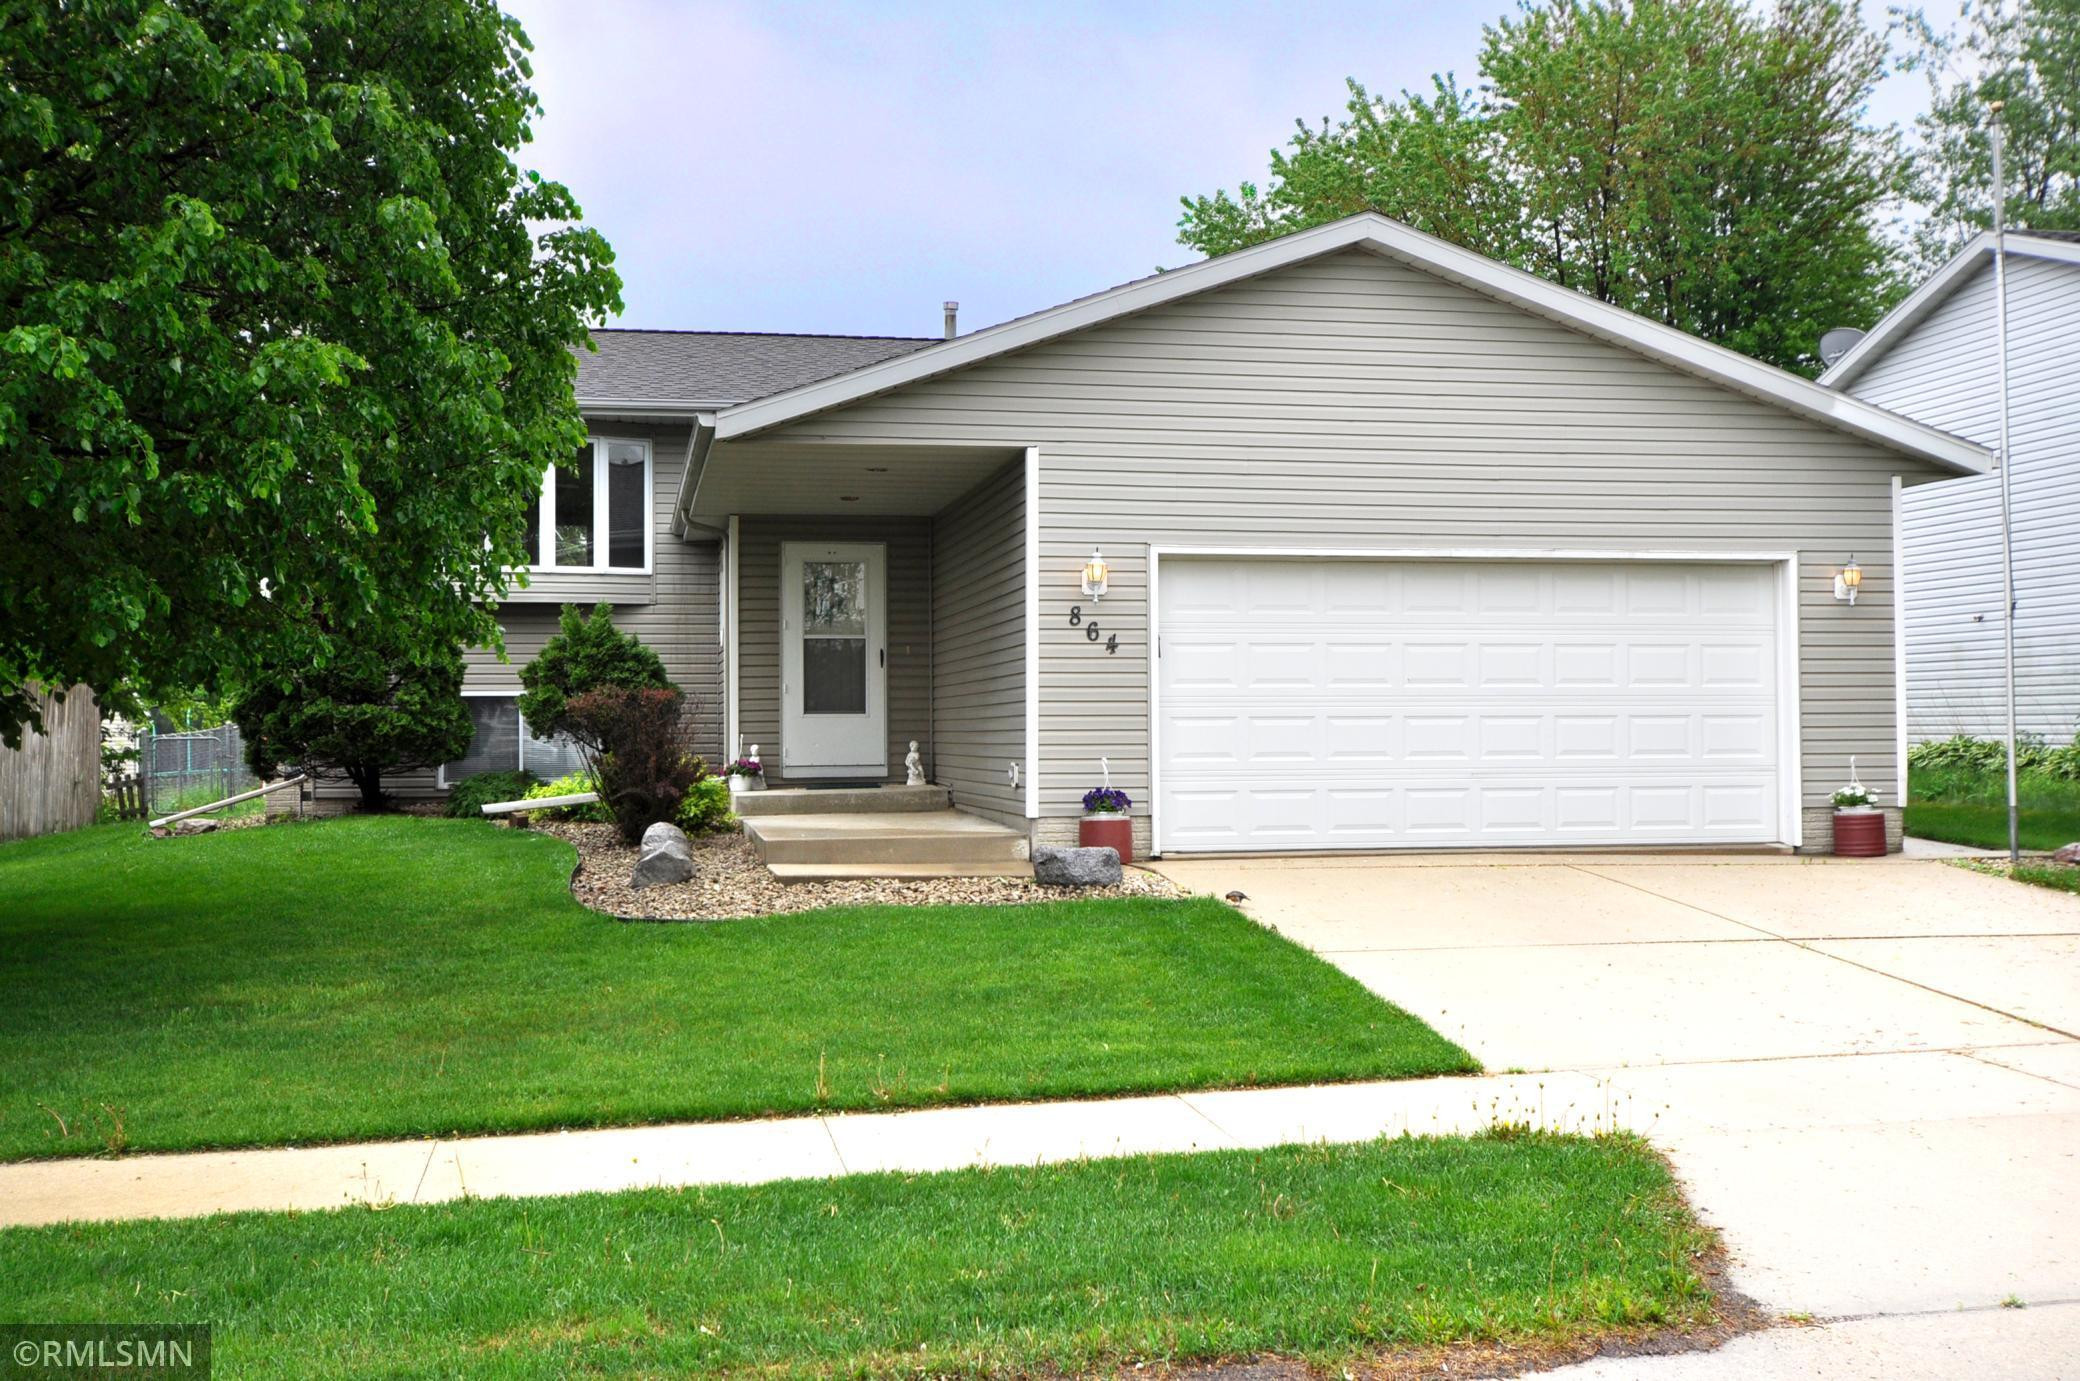 864 48th Avenue NW, Rochester, MN 55901